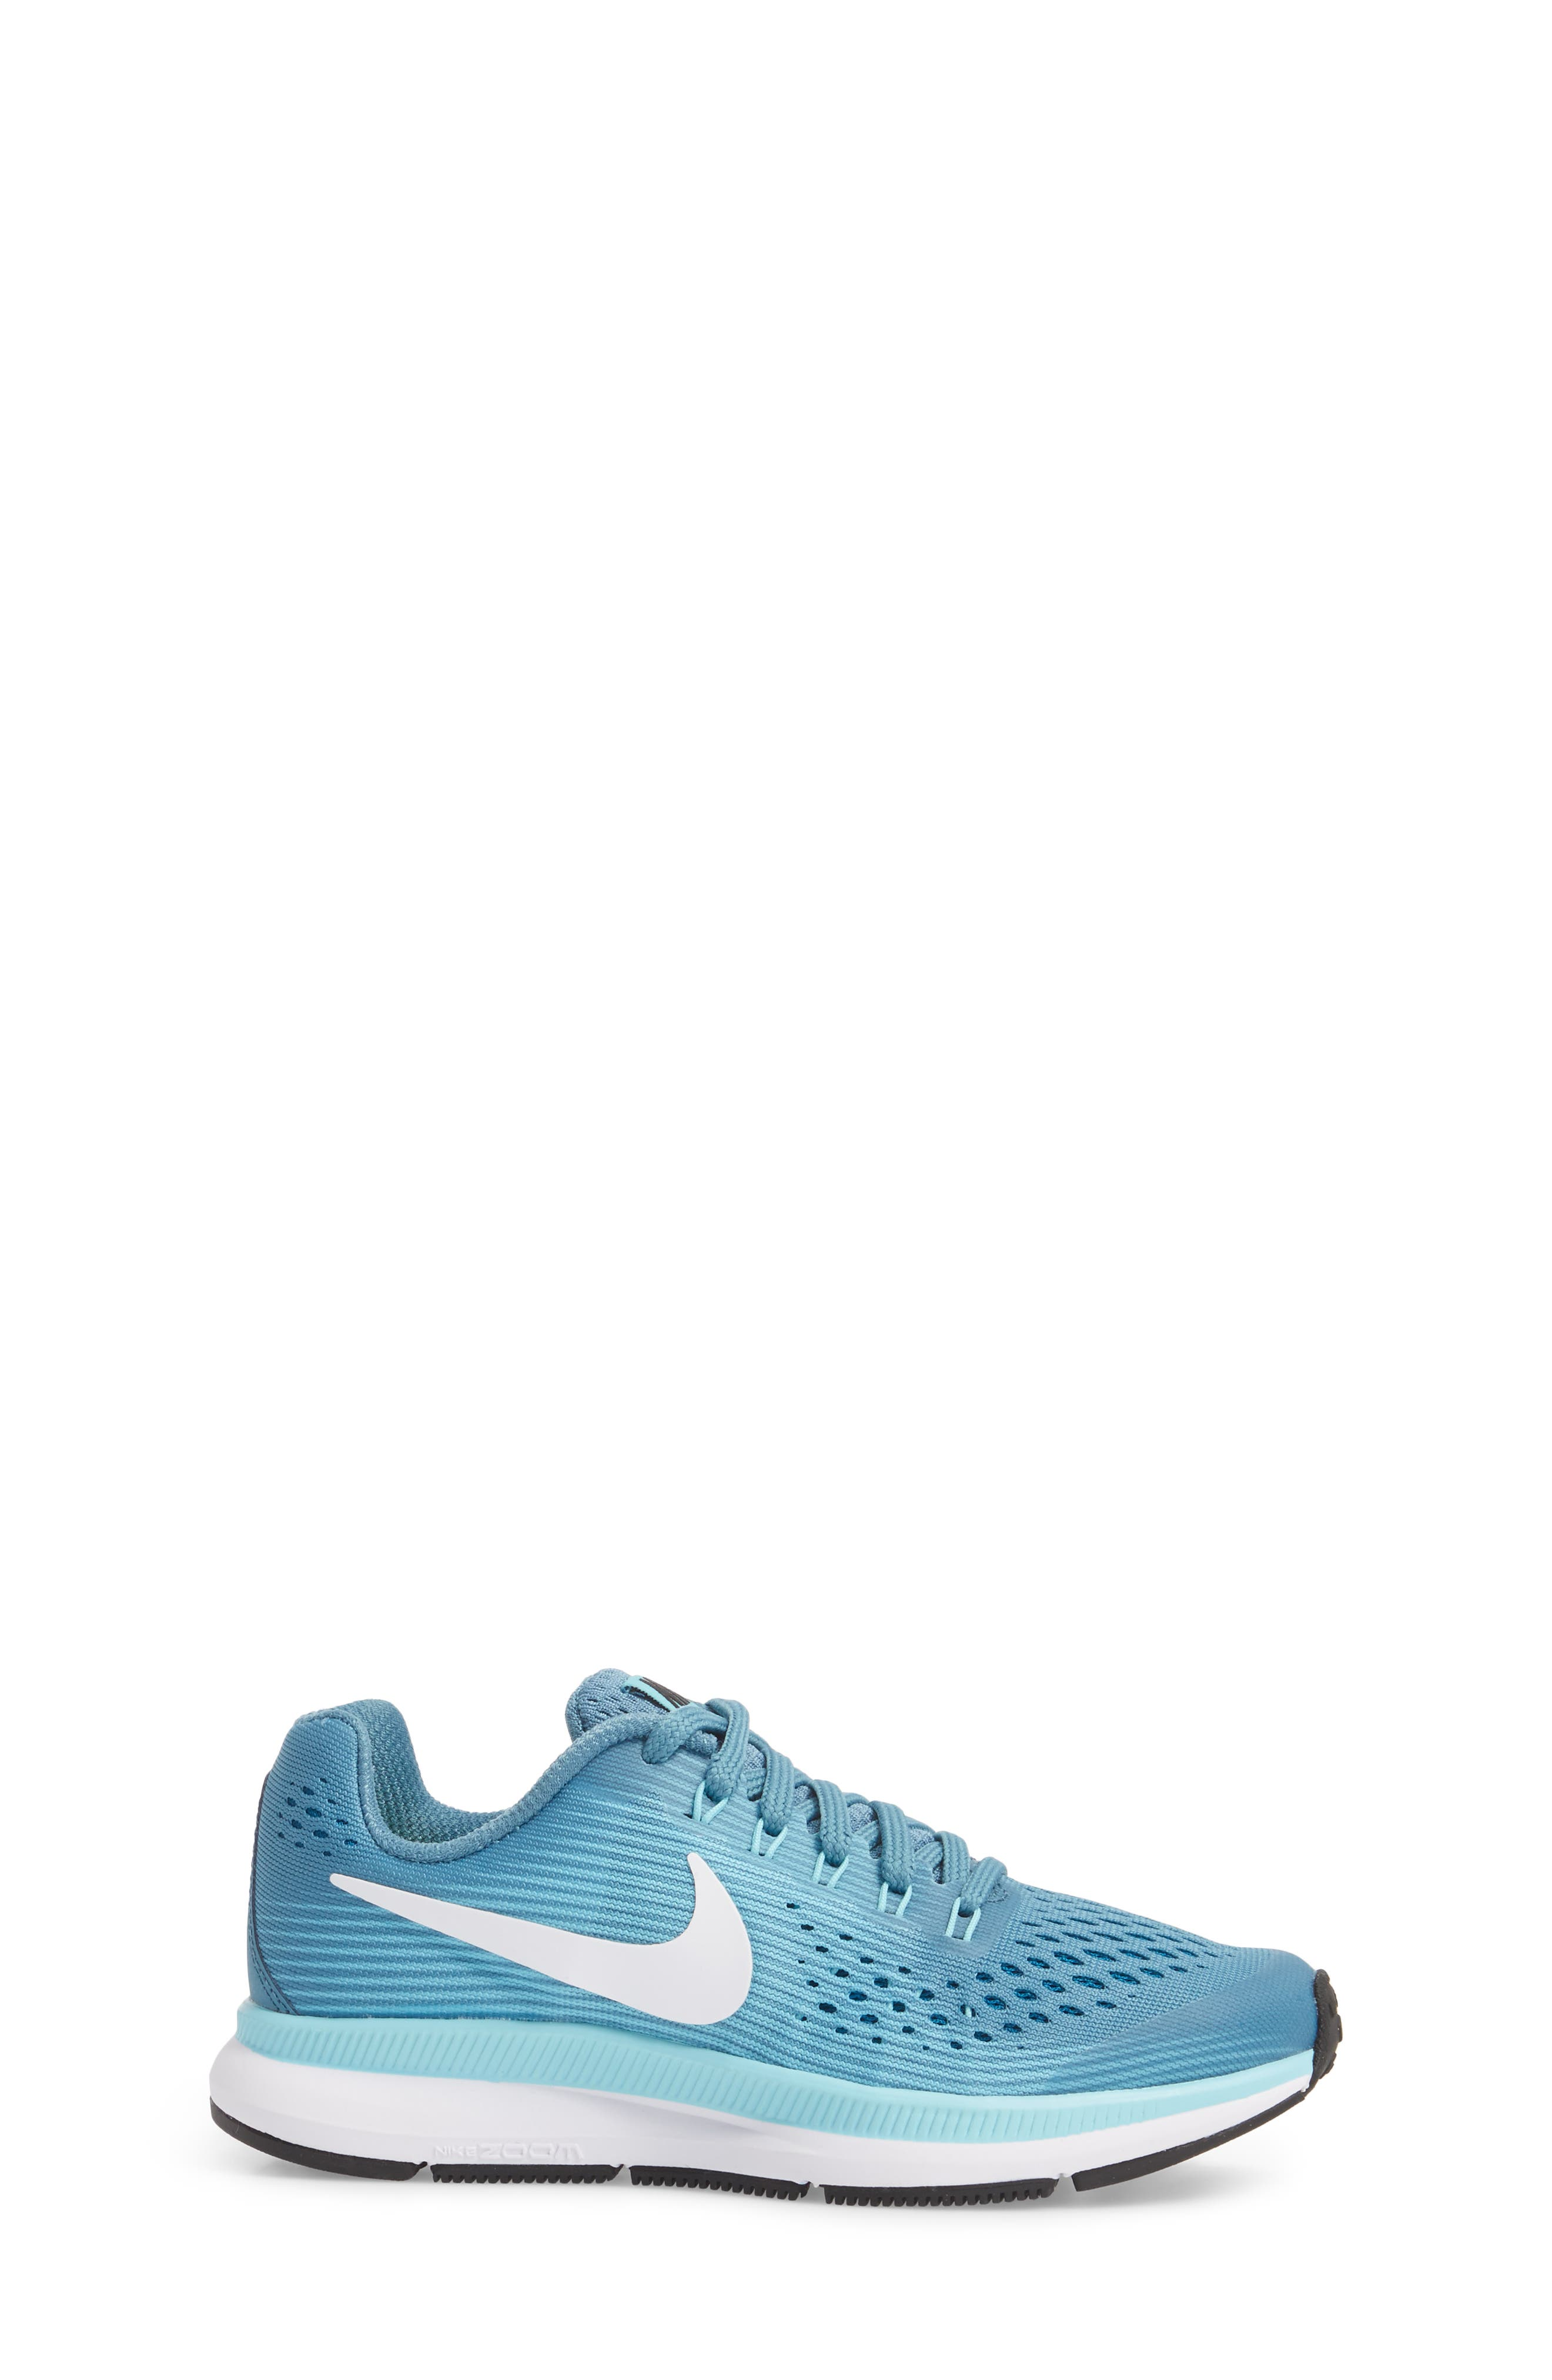 Zoom Pegasus 34 Sneaker,                             Alternate thumbnail 11, color,